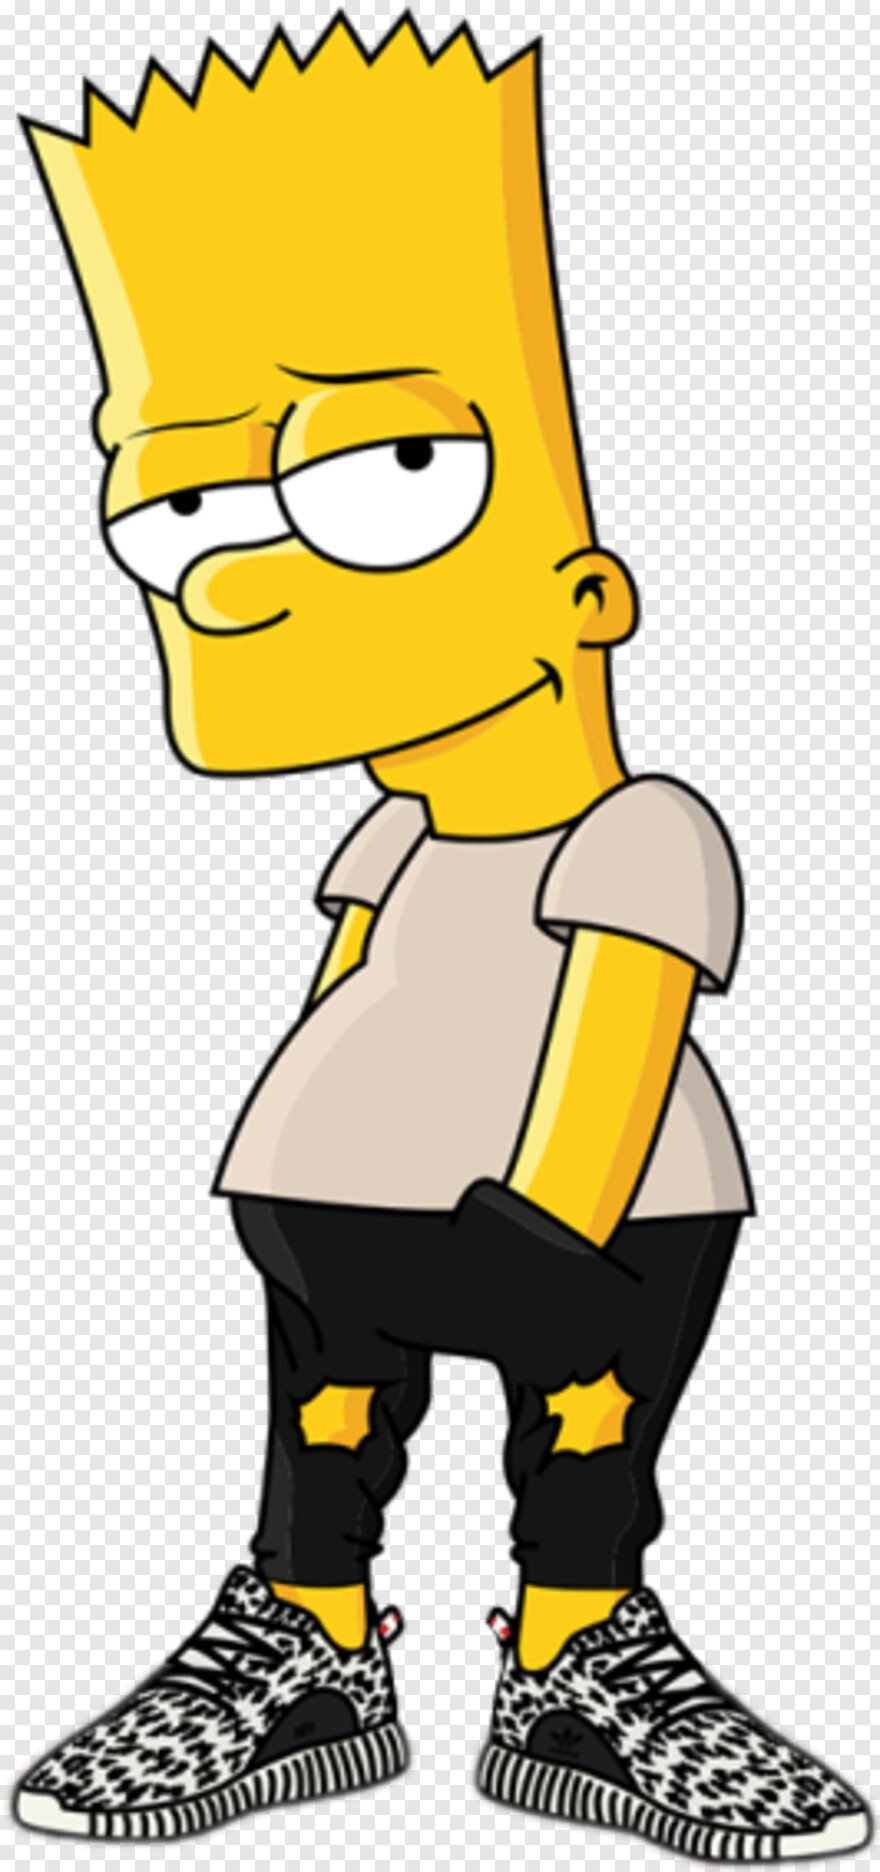 Homer Simpson Bart Simpson Png Hd Png Download 467x630